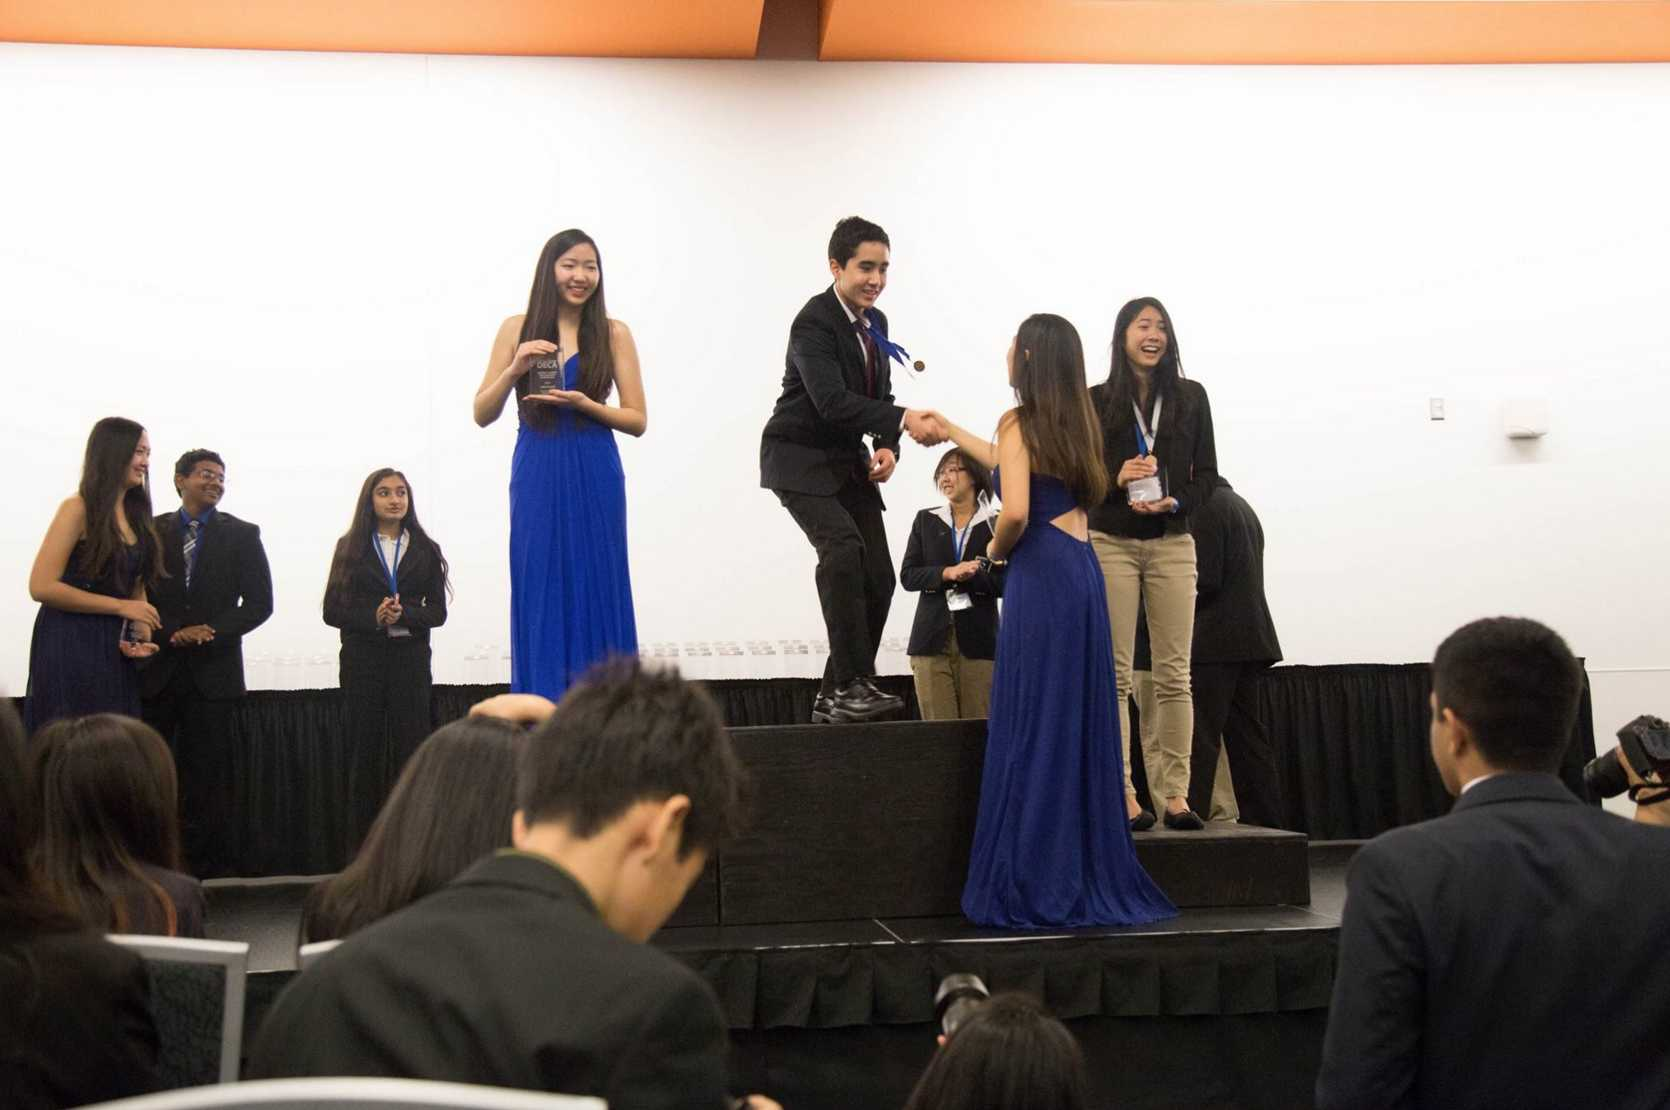 Chris Hailey (11) receives an award during the awards ceremony at the conference. Harker DECA will host a study session in preparation for the state conference this Friday at the Innovation Center.